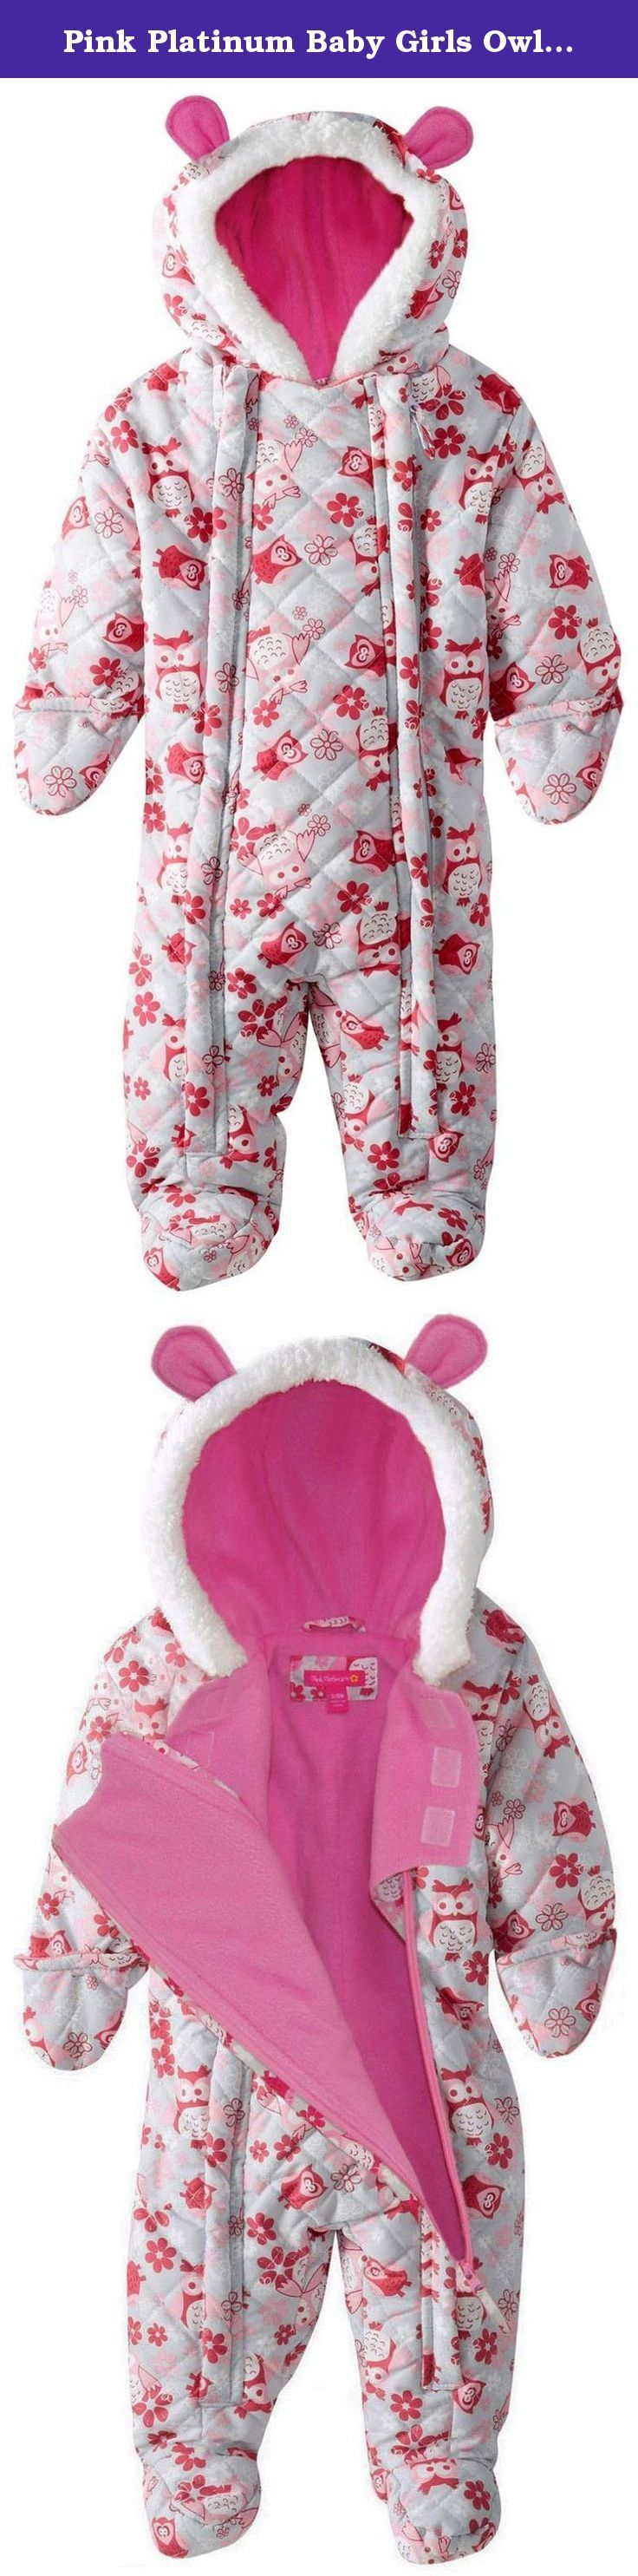 Pink Platinum Baby Girls Owl Microfleece Quilted Puffer Snow Pram Suit Bunting, Pink, 0-3 Months. Microfiber quilted all over owl print ear snow pram. Sherpa trim around the hood. Polar fleece lined. Full double side zip opening for easy on and off. Attached mittens. Water and wind resistant. Perfect accessory for cold days. SKU: 17-cze-16-1-Silver-0/3M.